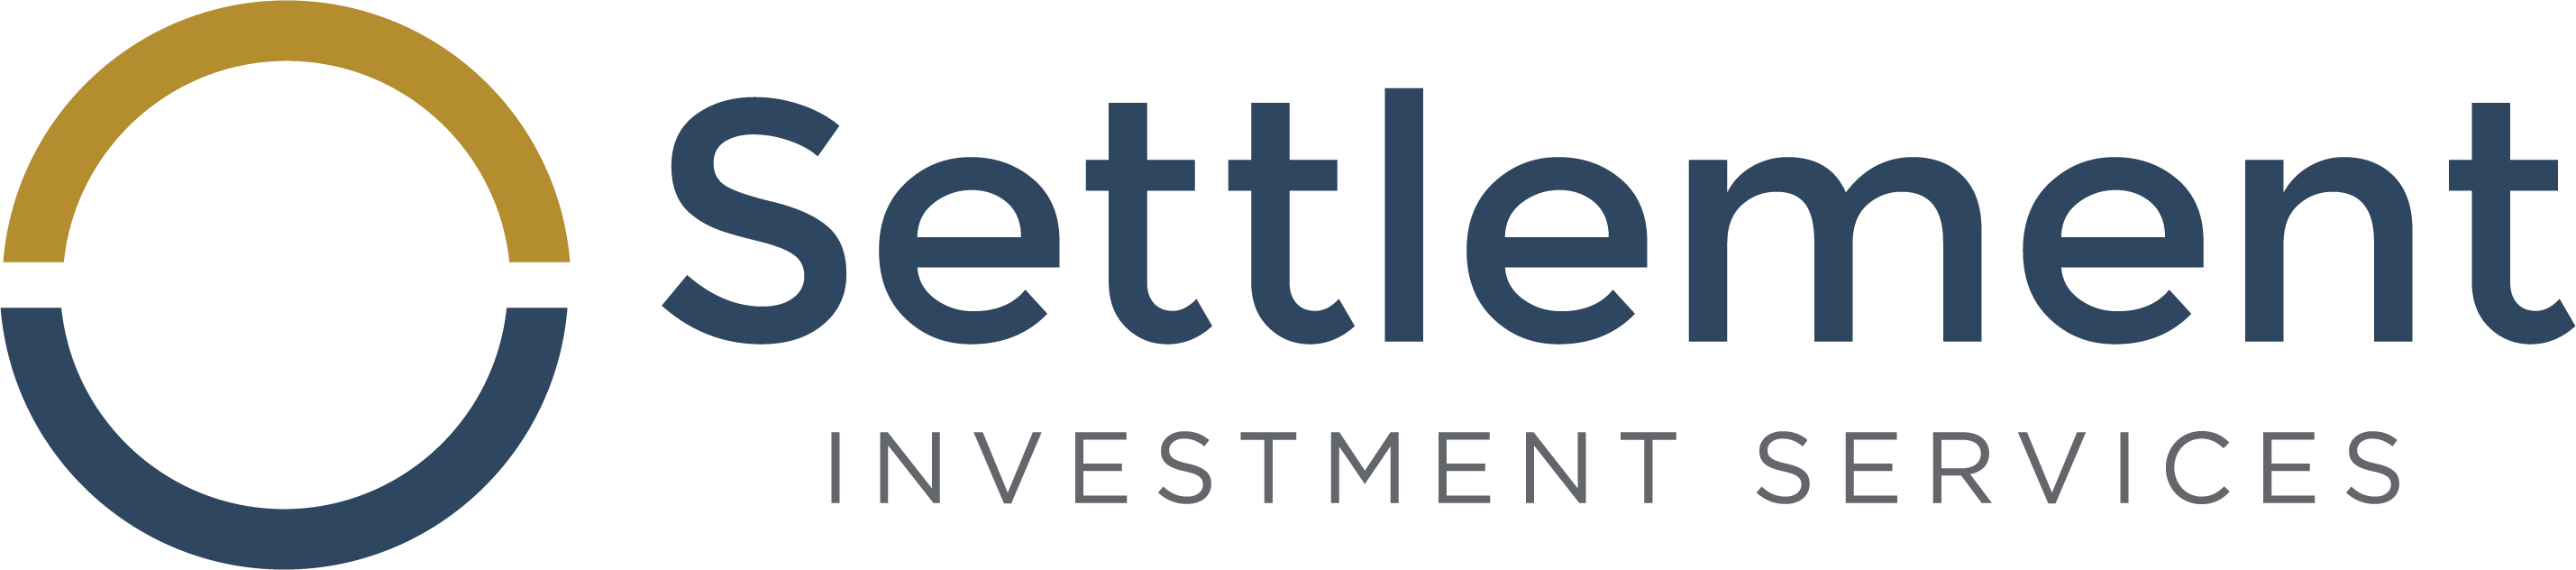 Settlement Investment Services